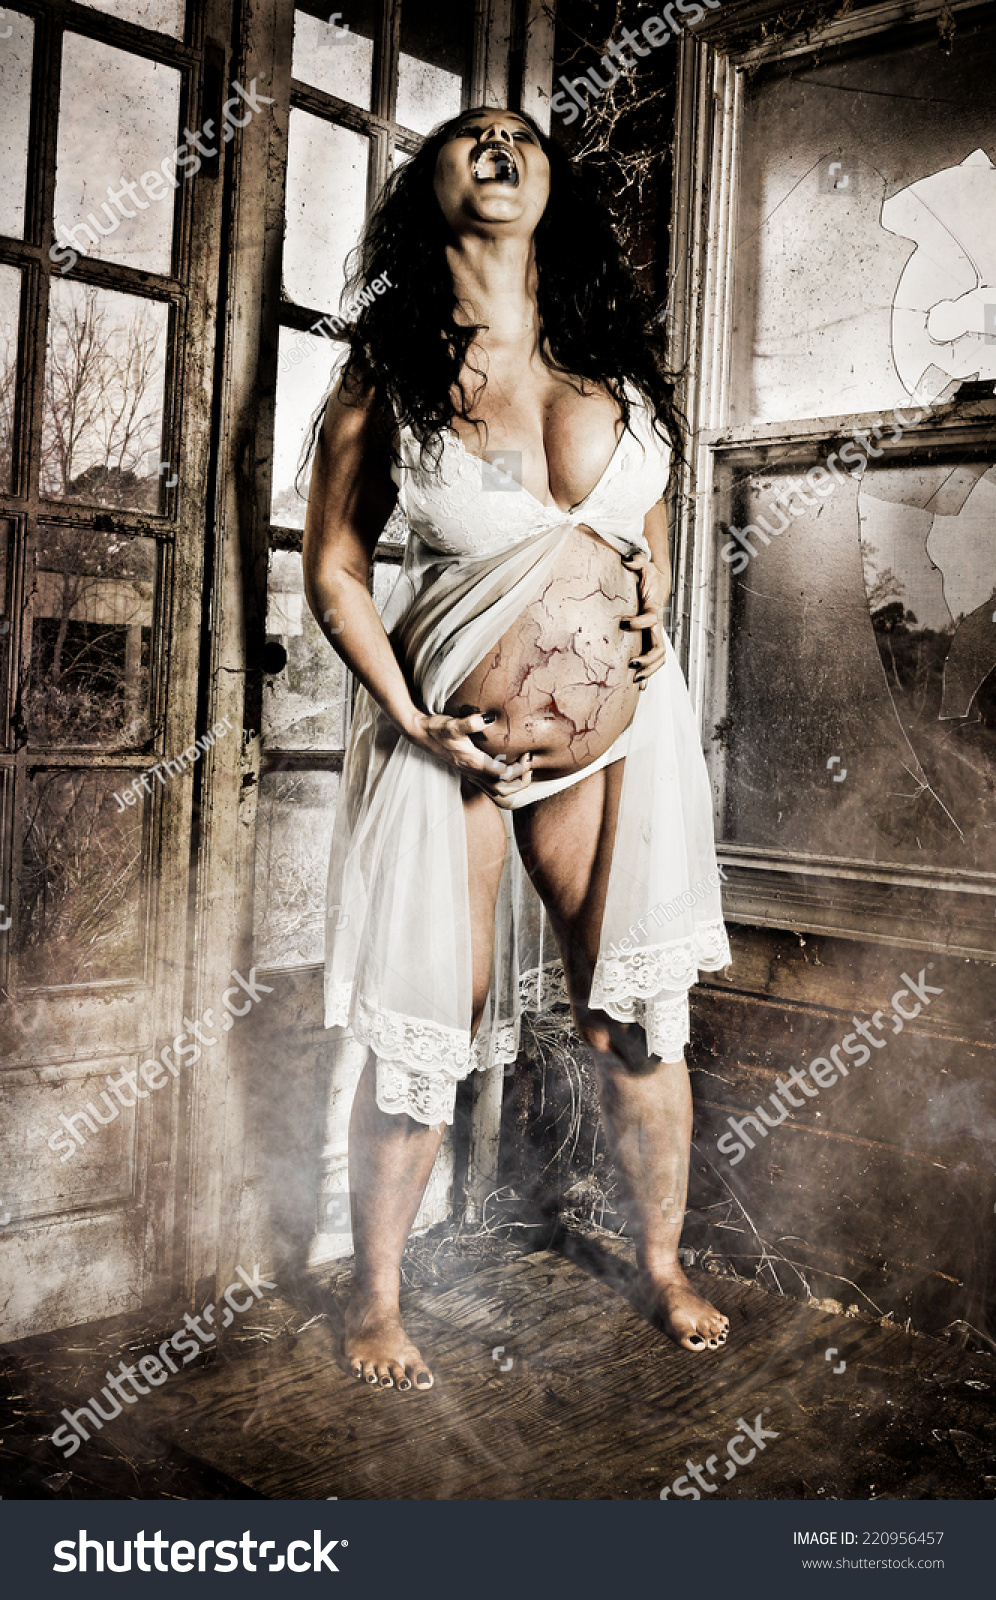 pregnant voyeur -porn Horror Scene of a Pregnant Woman Possessed with cracked skin holding her  belly